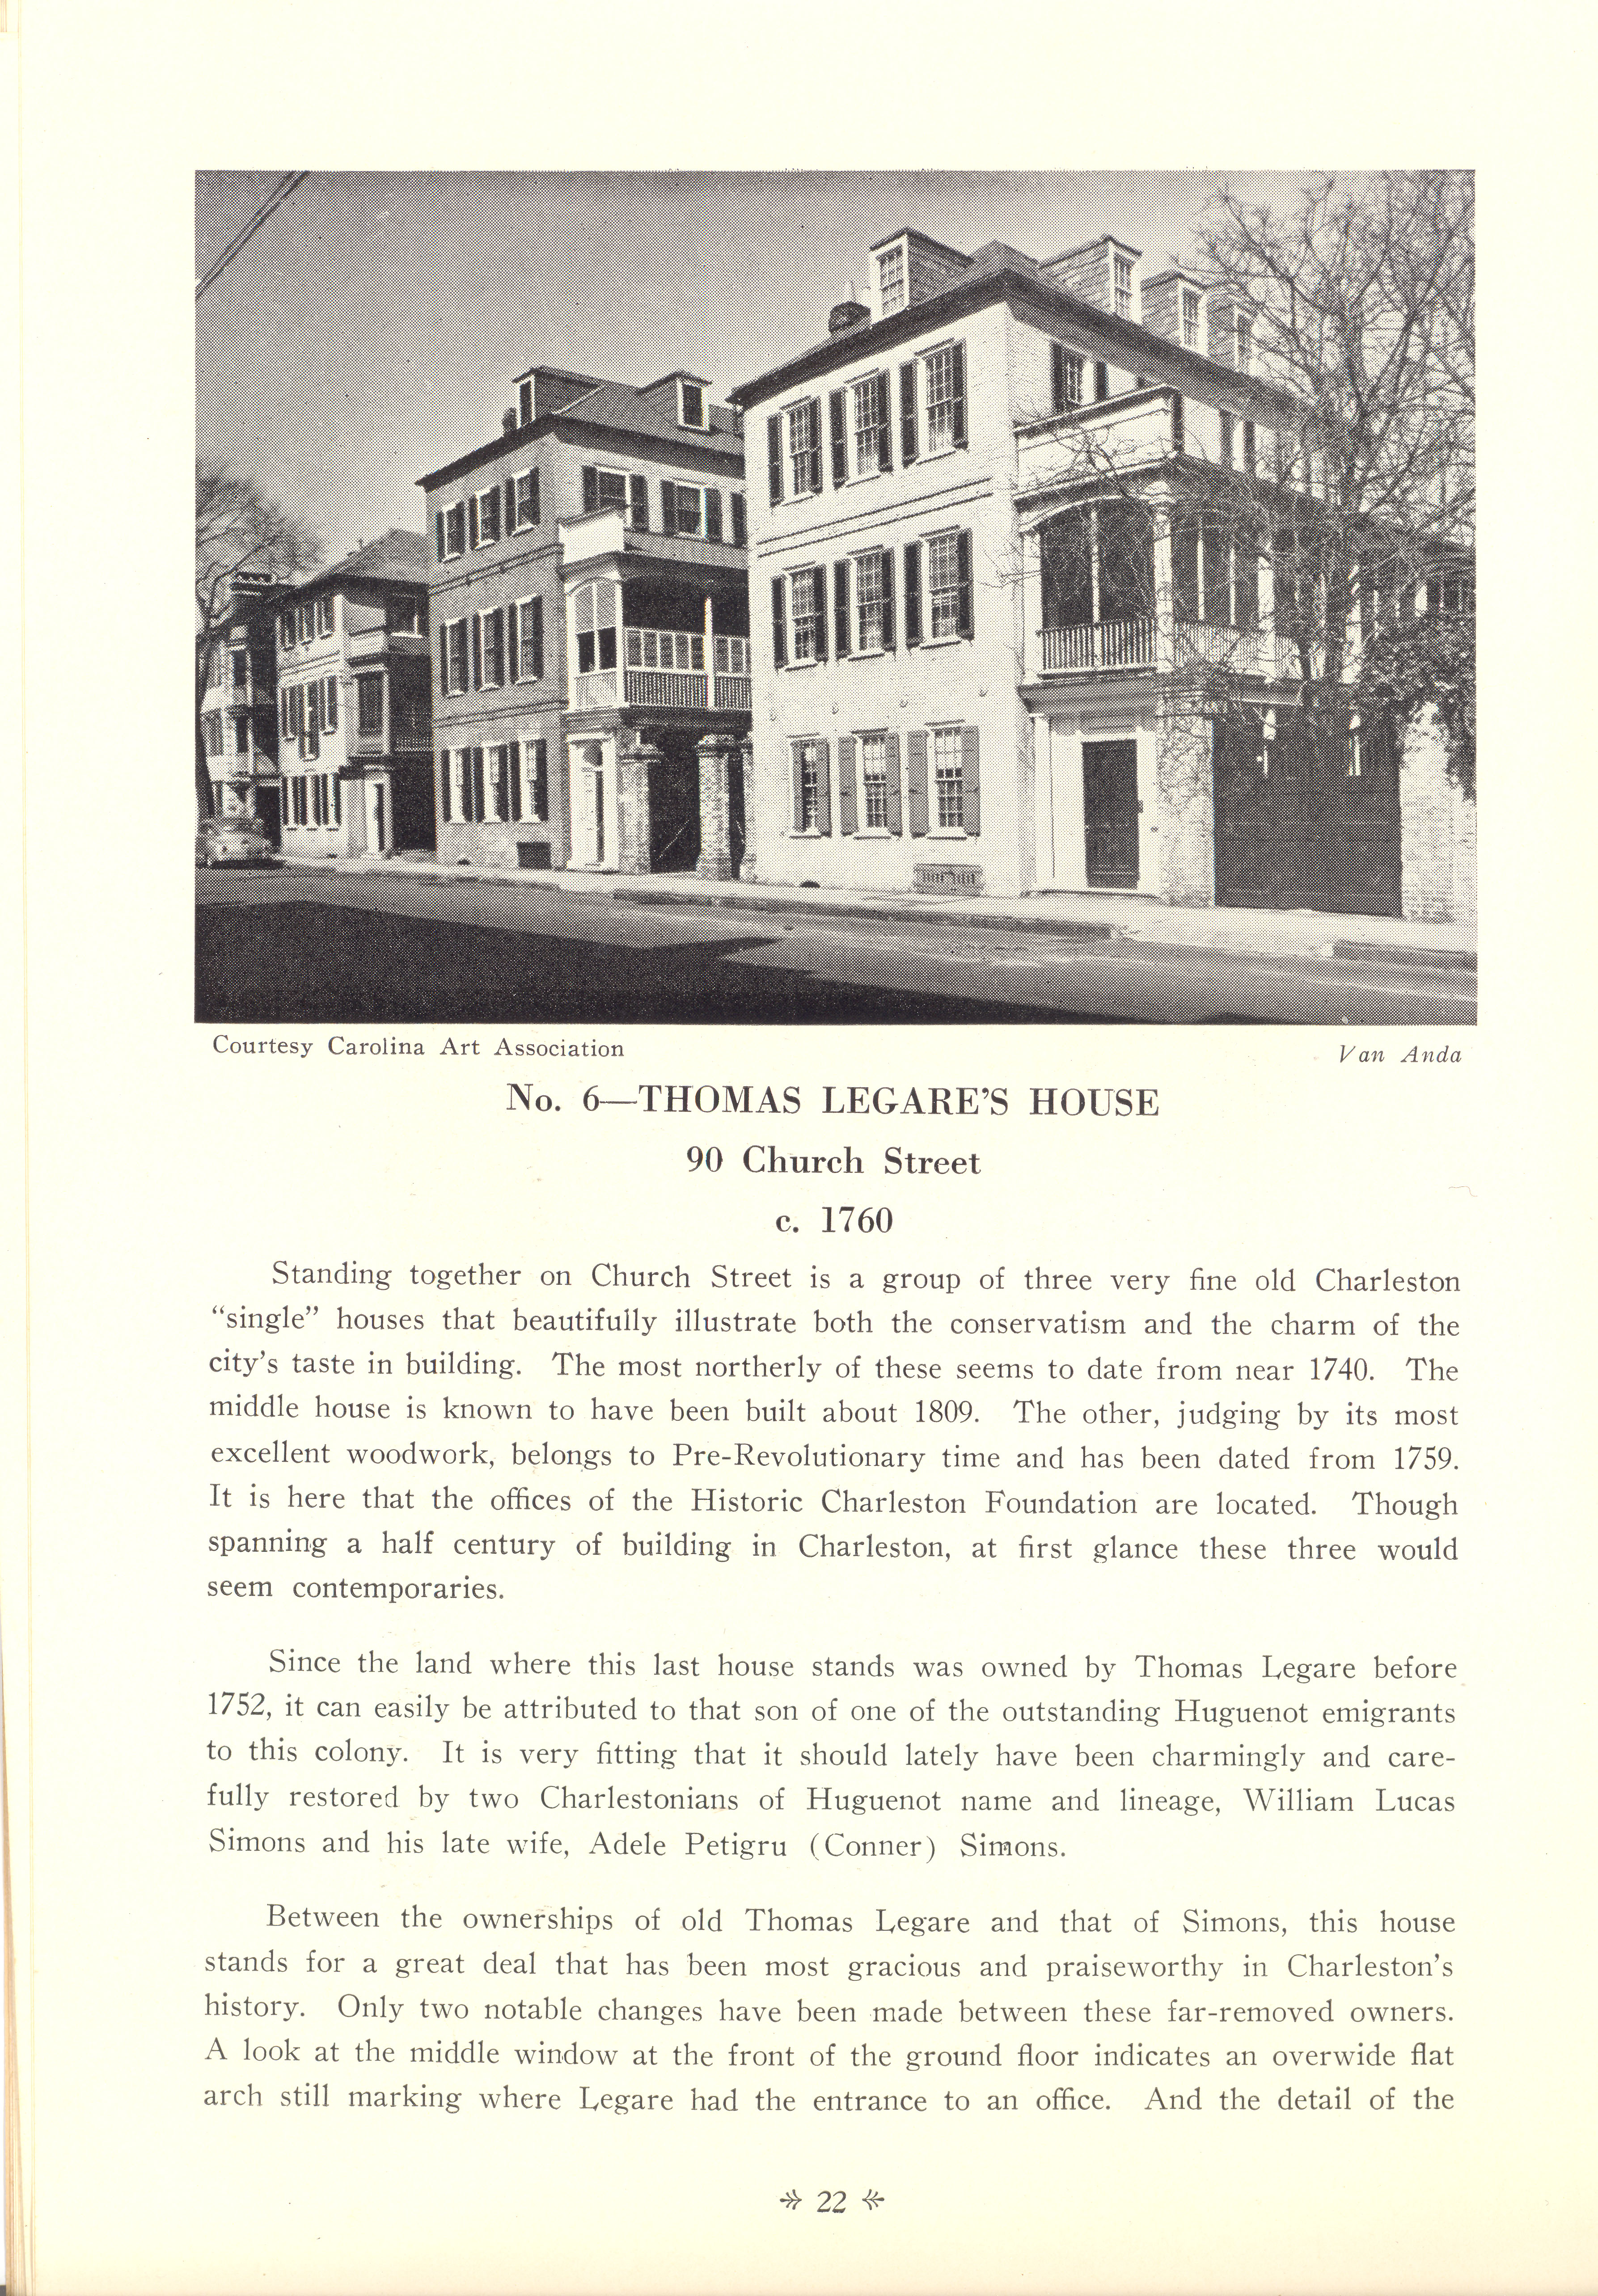 Page 22:  No. 6 - Thomas Legare's House, 90 Church Street, c. 1760